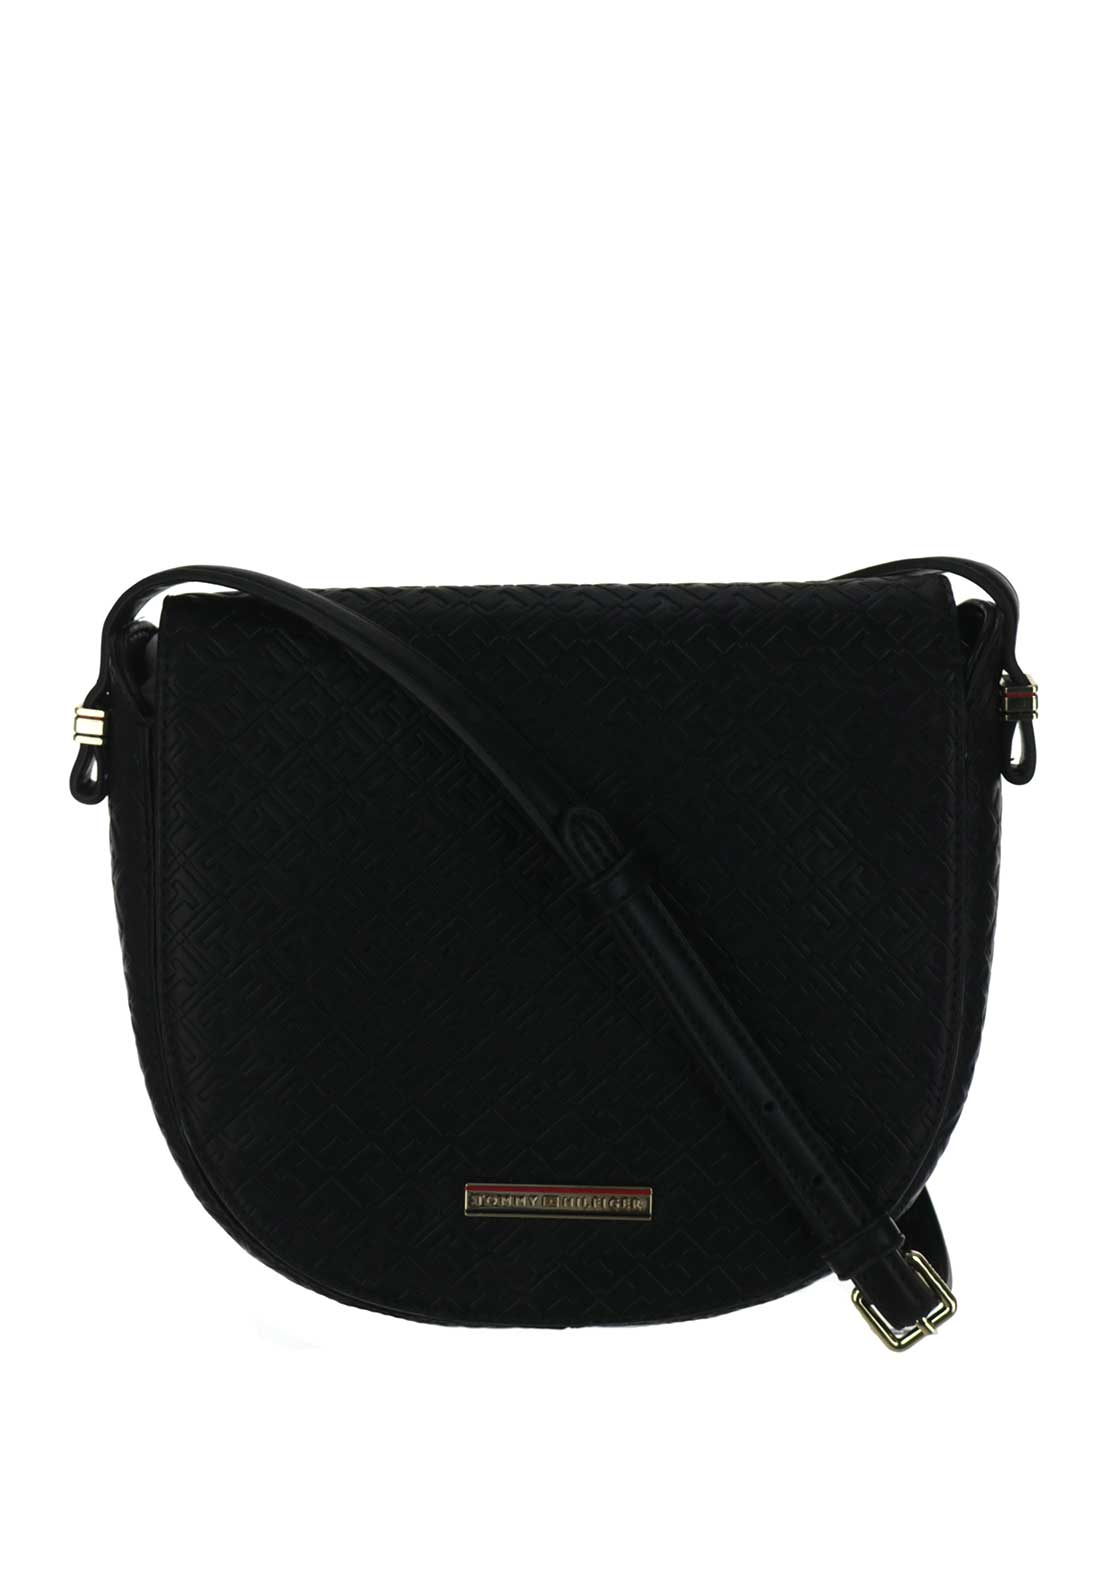 Tommy Hilfiger Emboss Flap Crossover Bag, Black